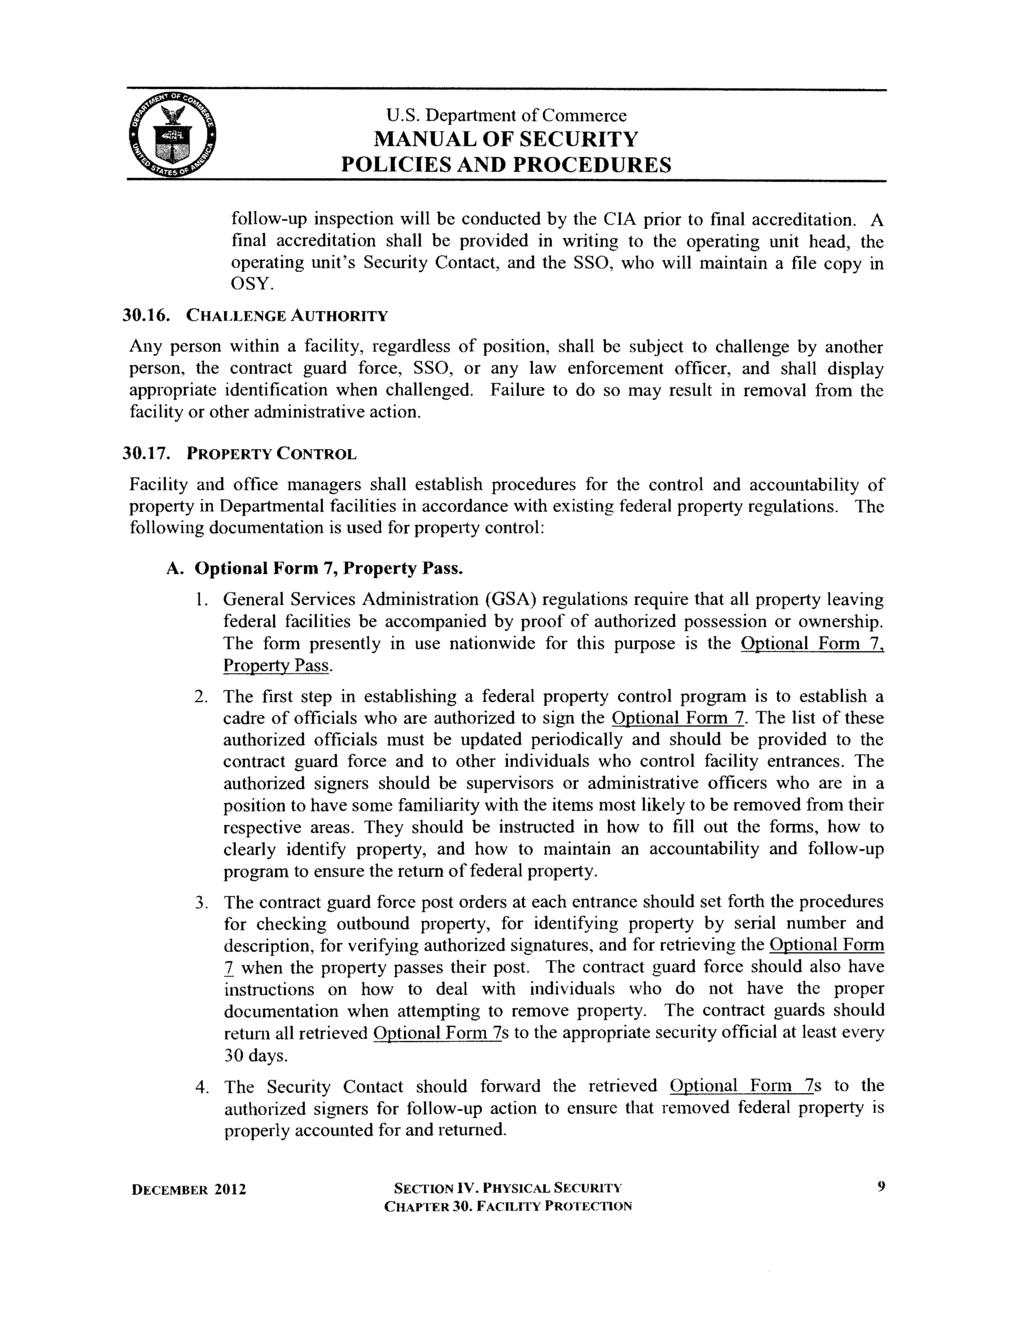 letter of medical necessity fsa template department of merce manual of security policies and procedures